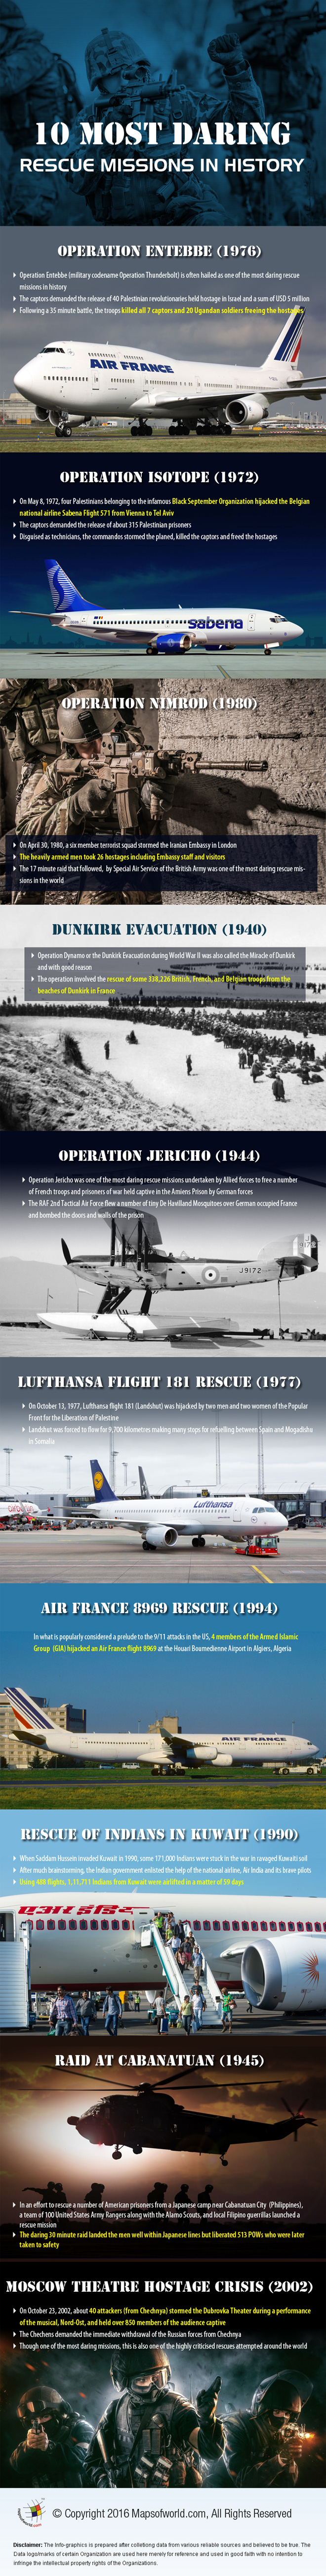 infographic-on-10-most-daring-rescue-missions-in-history